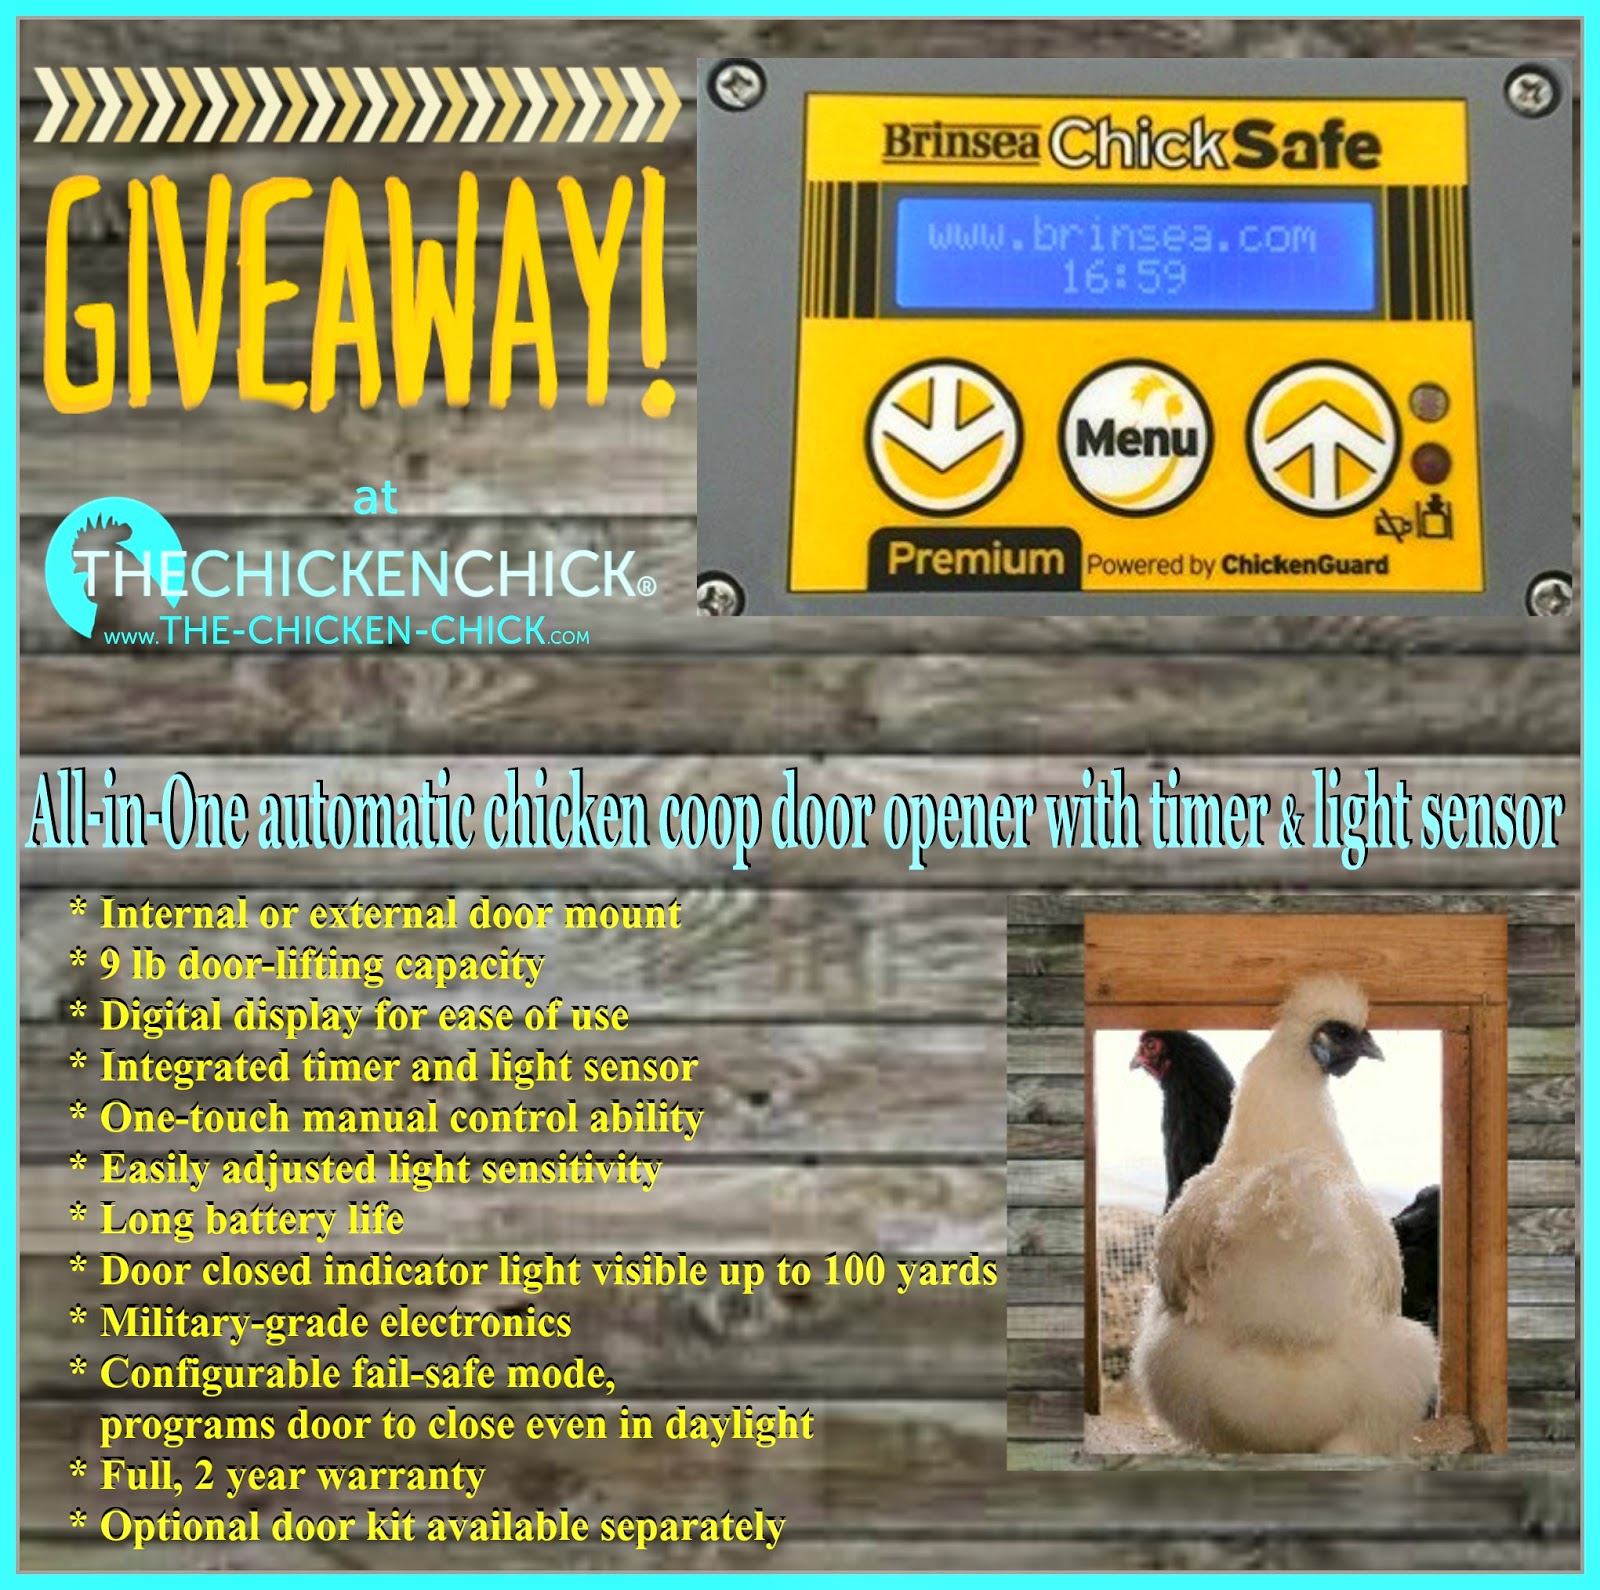 Brinsea ChickSafe Pop Door Opener GIveaway at The Chicken Chick®